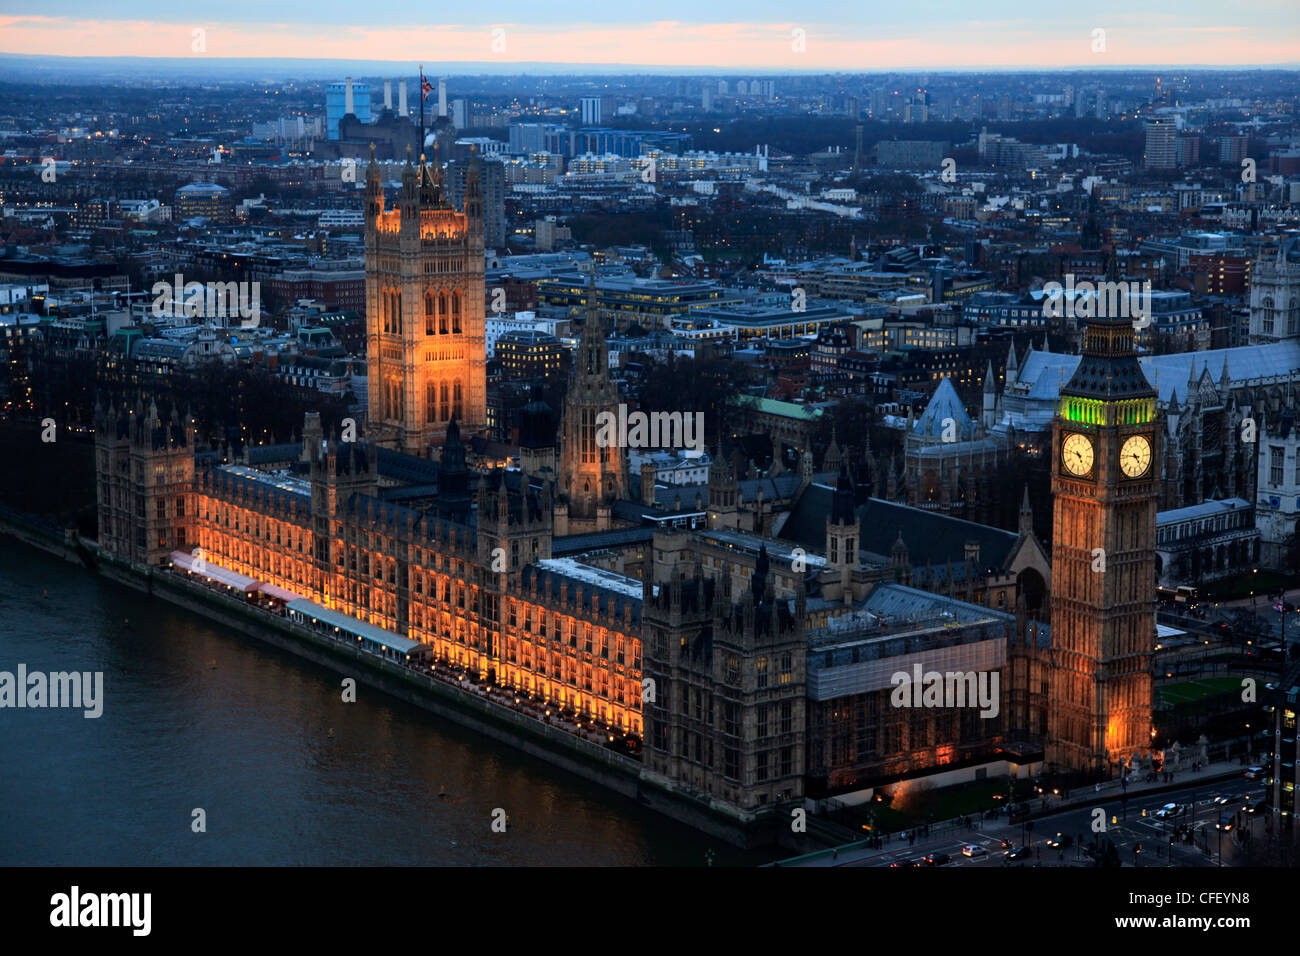 Aerial view of the Palace of Westminster and Big Ben in central London from high over the River Thames, London, Stock Photo